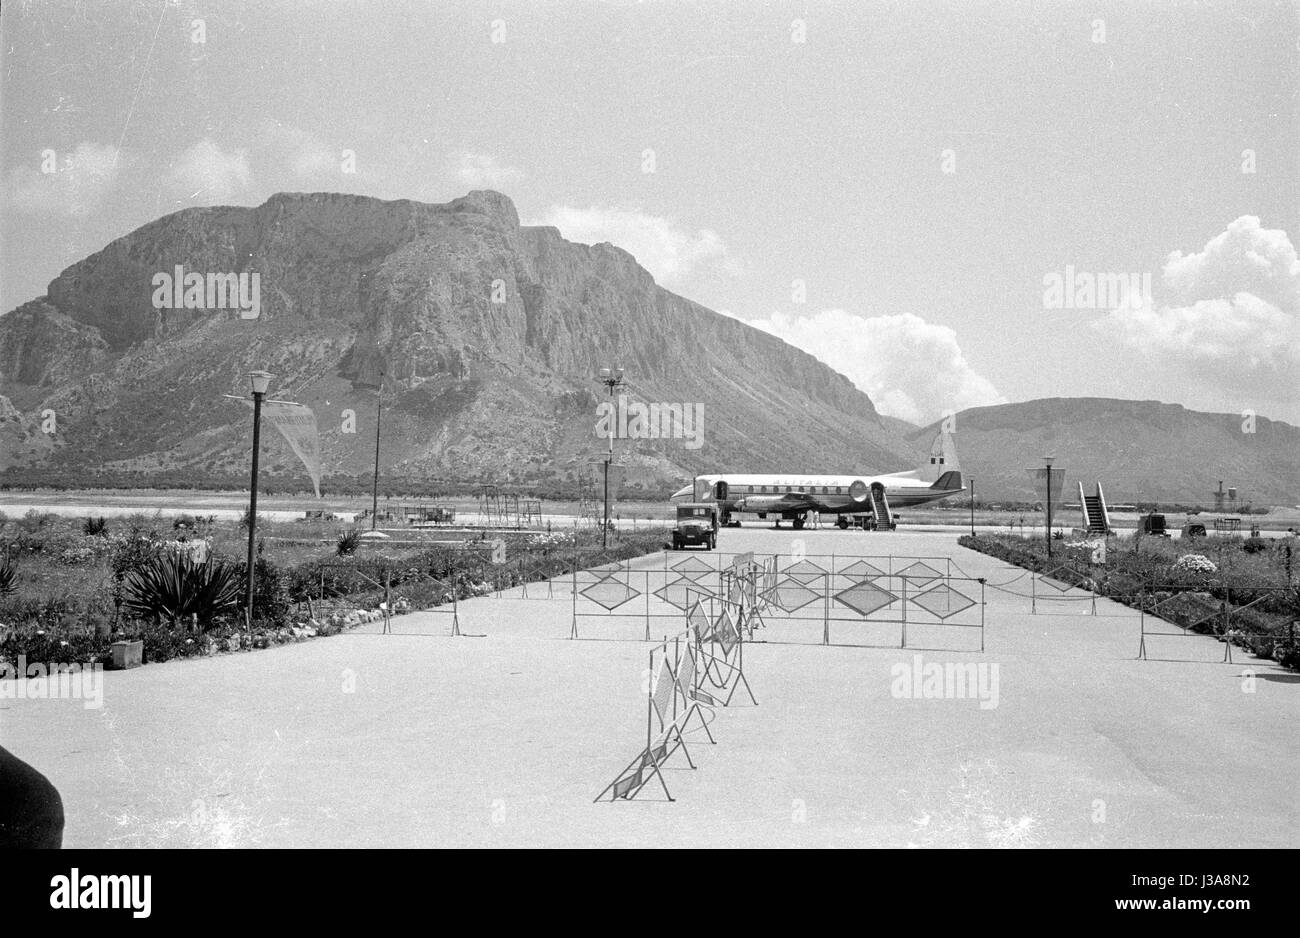 'The airport ''Palermo-Punta Raisi'' on the north coast of Sicily, 1963' - Stock Image